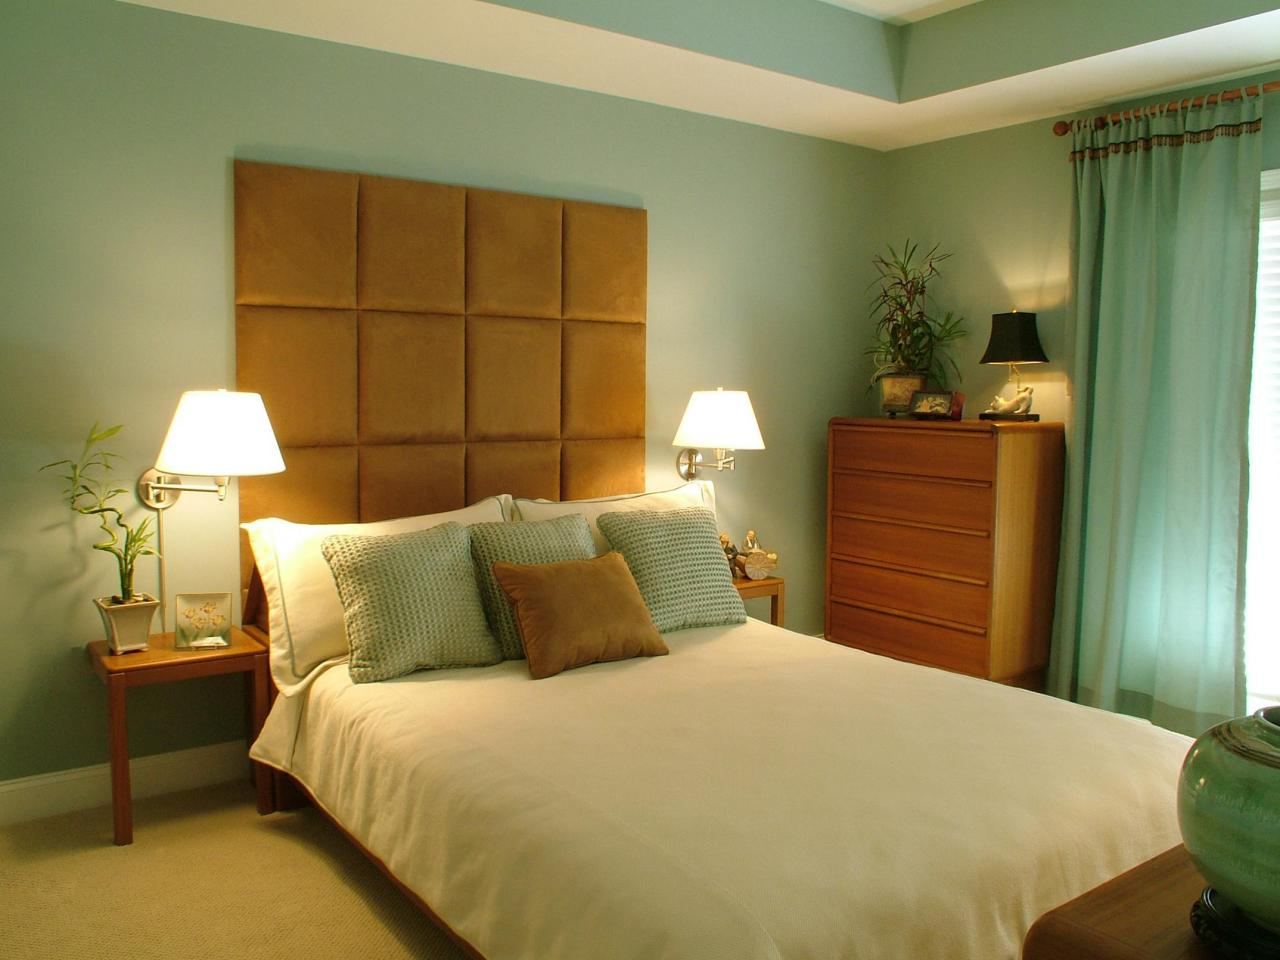 Spa Like Colors. Bedroom Wall Color Schemes  Pictures  Options   Ideas   HGTV